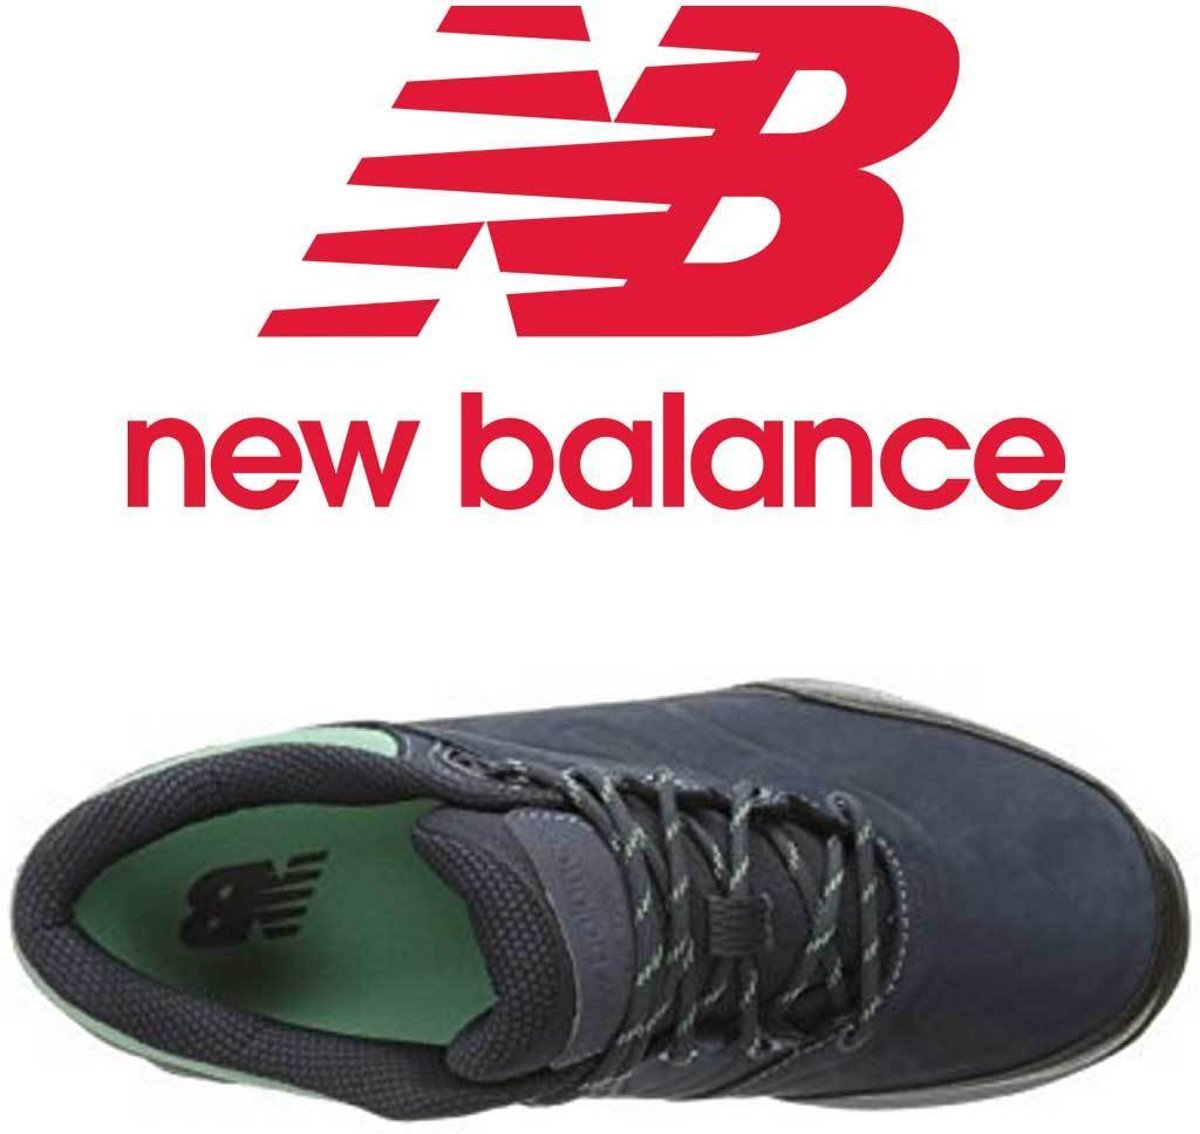 new balance dames wandelschoen ww888